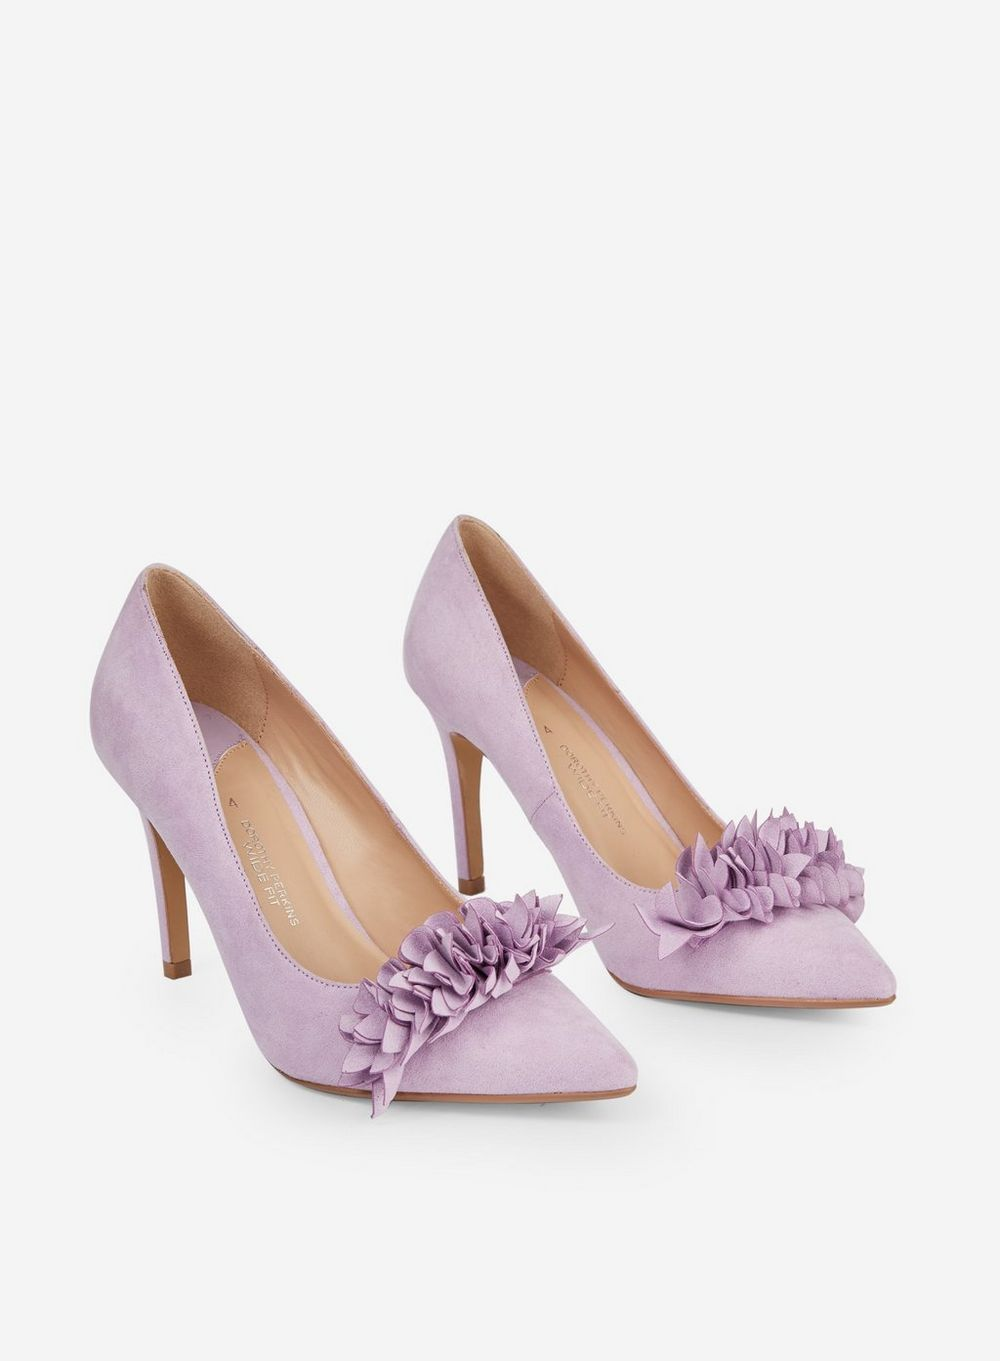 Wide Fit Lilac 'Daylily' Court Shoes